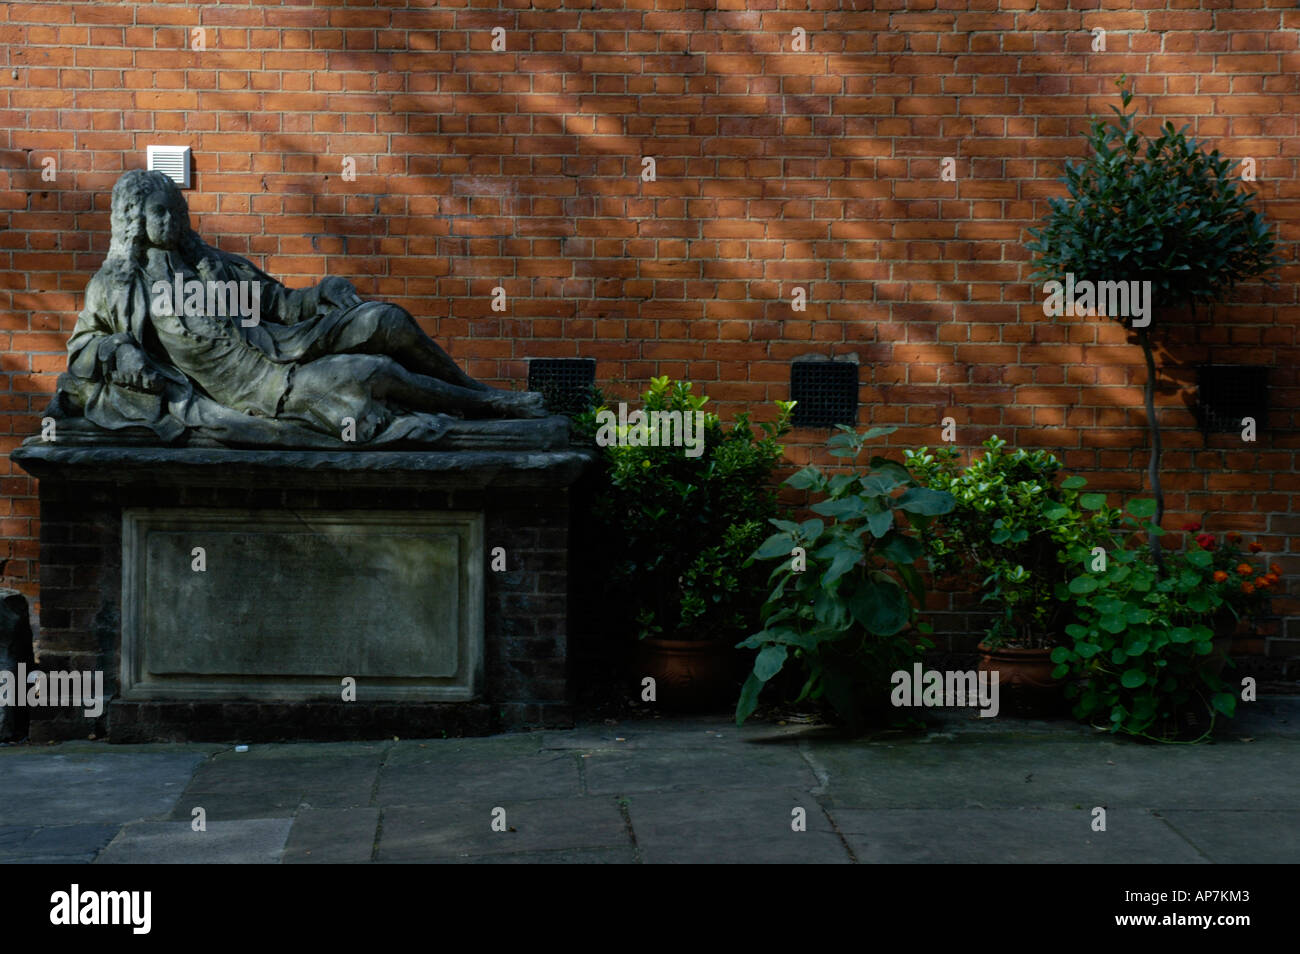 Statue in courtyard of Middle Temple Inns of the Court London England - Stock Image